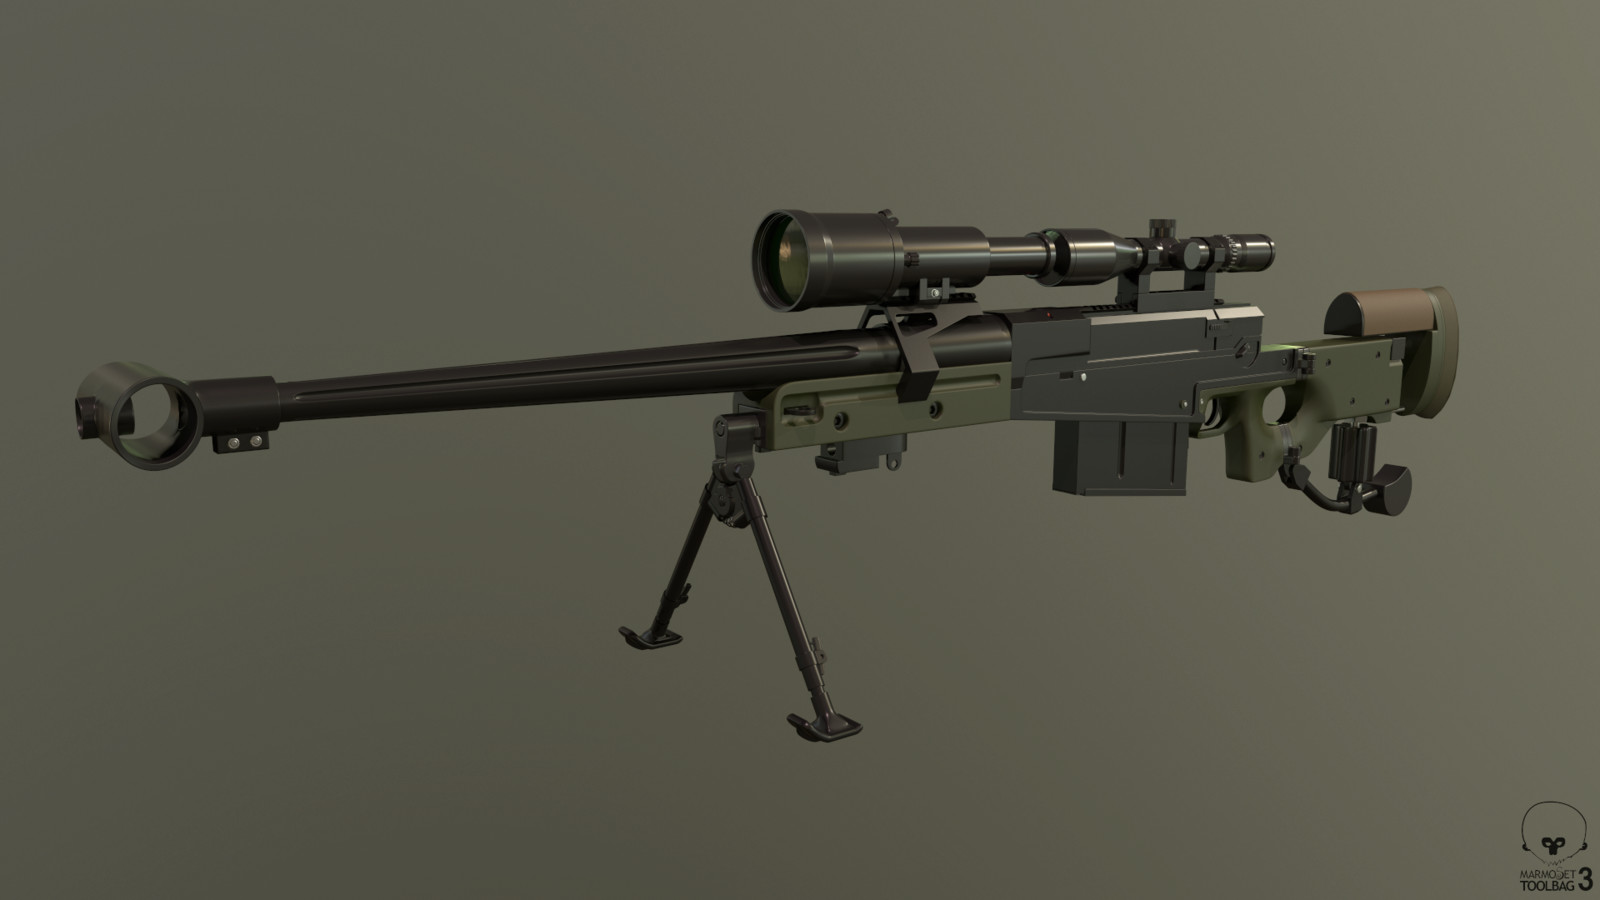 AM 50 / L121A1 with Schmidt & Bender 3-12x50 PM II Scope, front mount with Hensoldt NV80 night vision scope.  High Poly - Right Side.